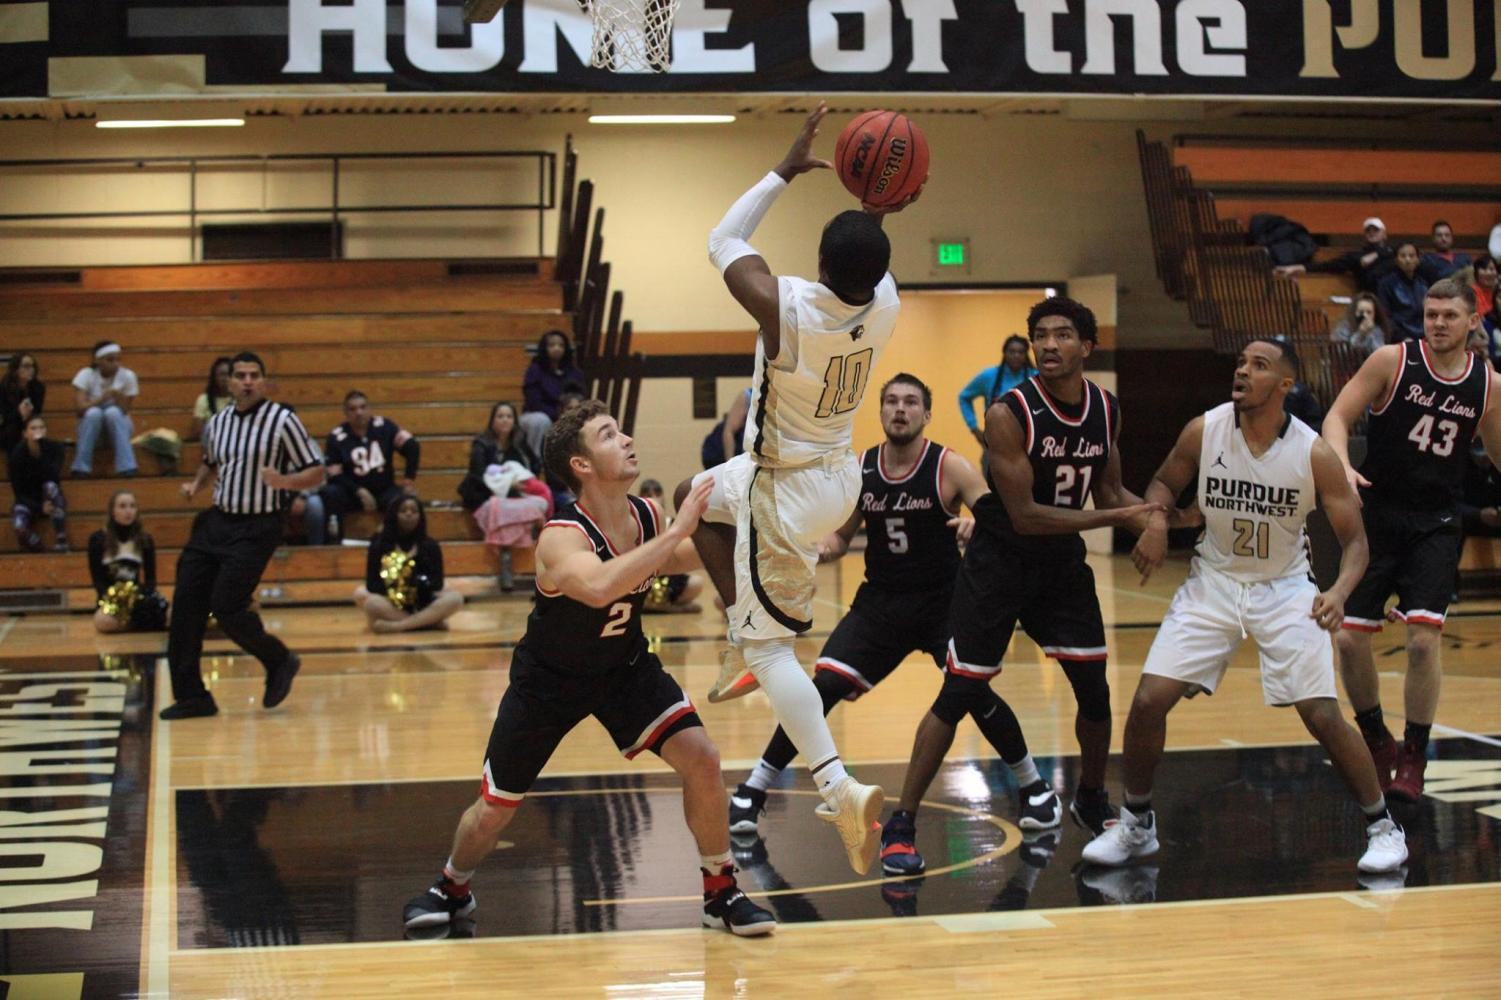 Men's basketball won its home opener 113-81 against Lincoln Christian University on Nov. 14.